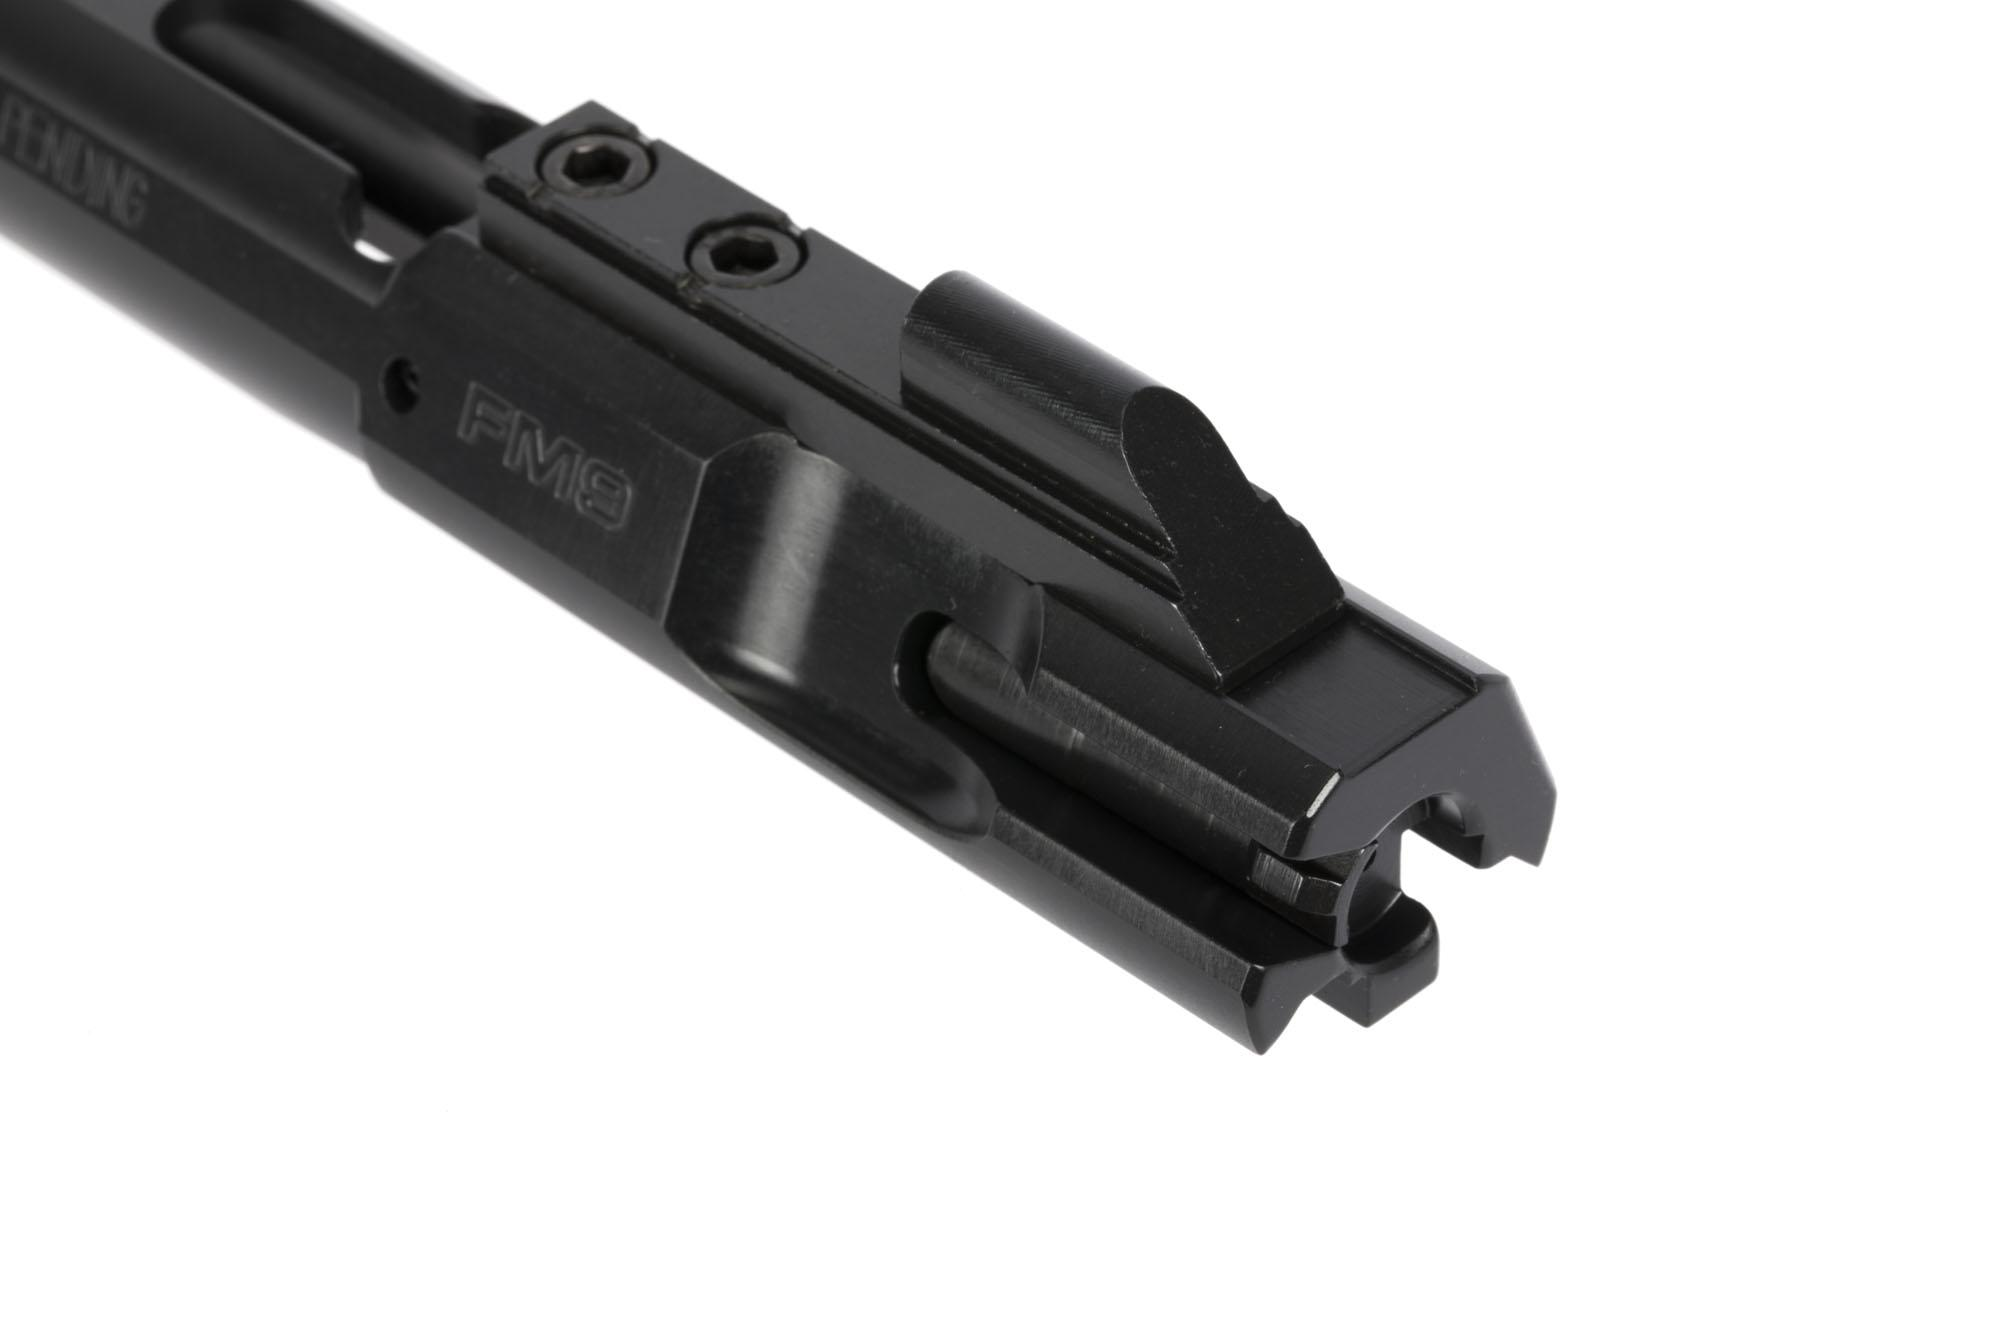 Foxtrot Mike Products Premium 9mm Bolt Carrier Assembly - Glock Compatible